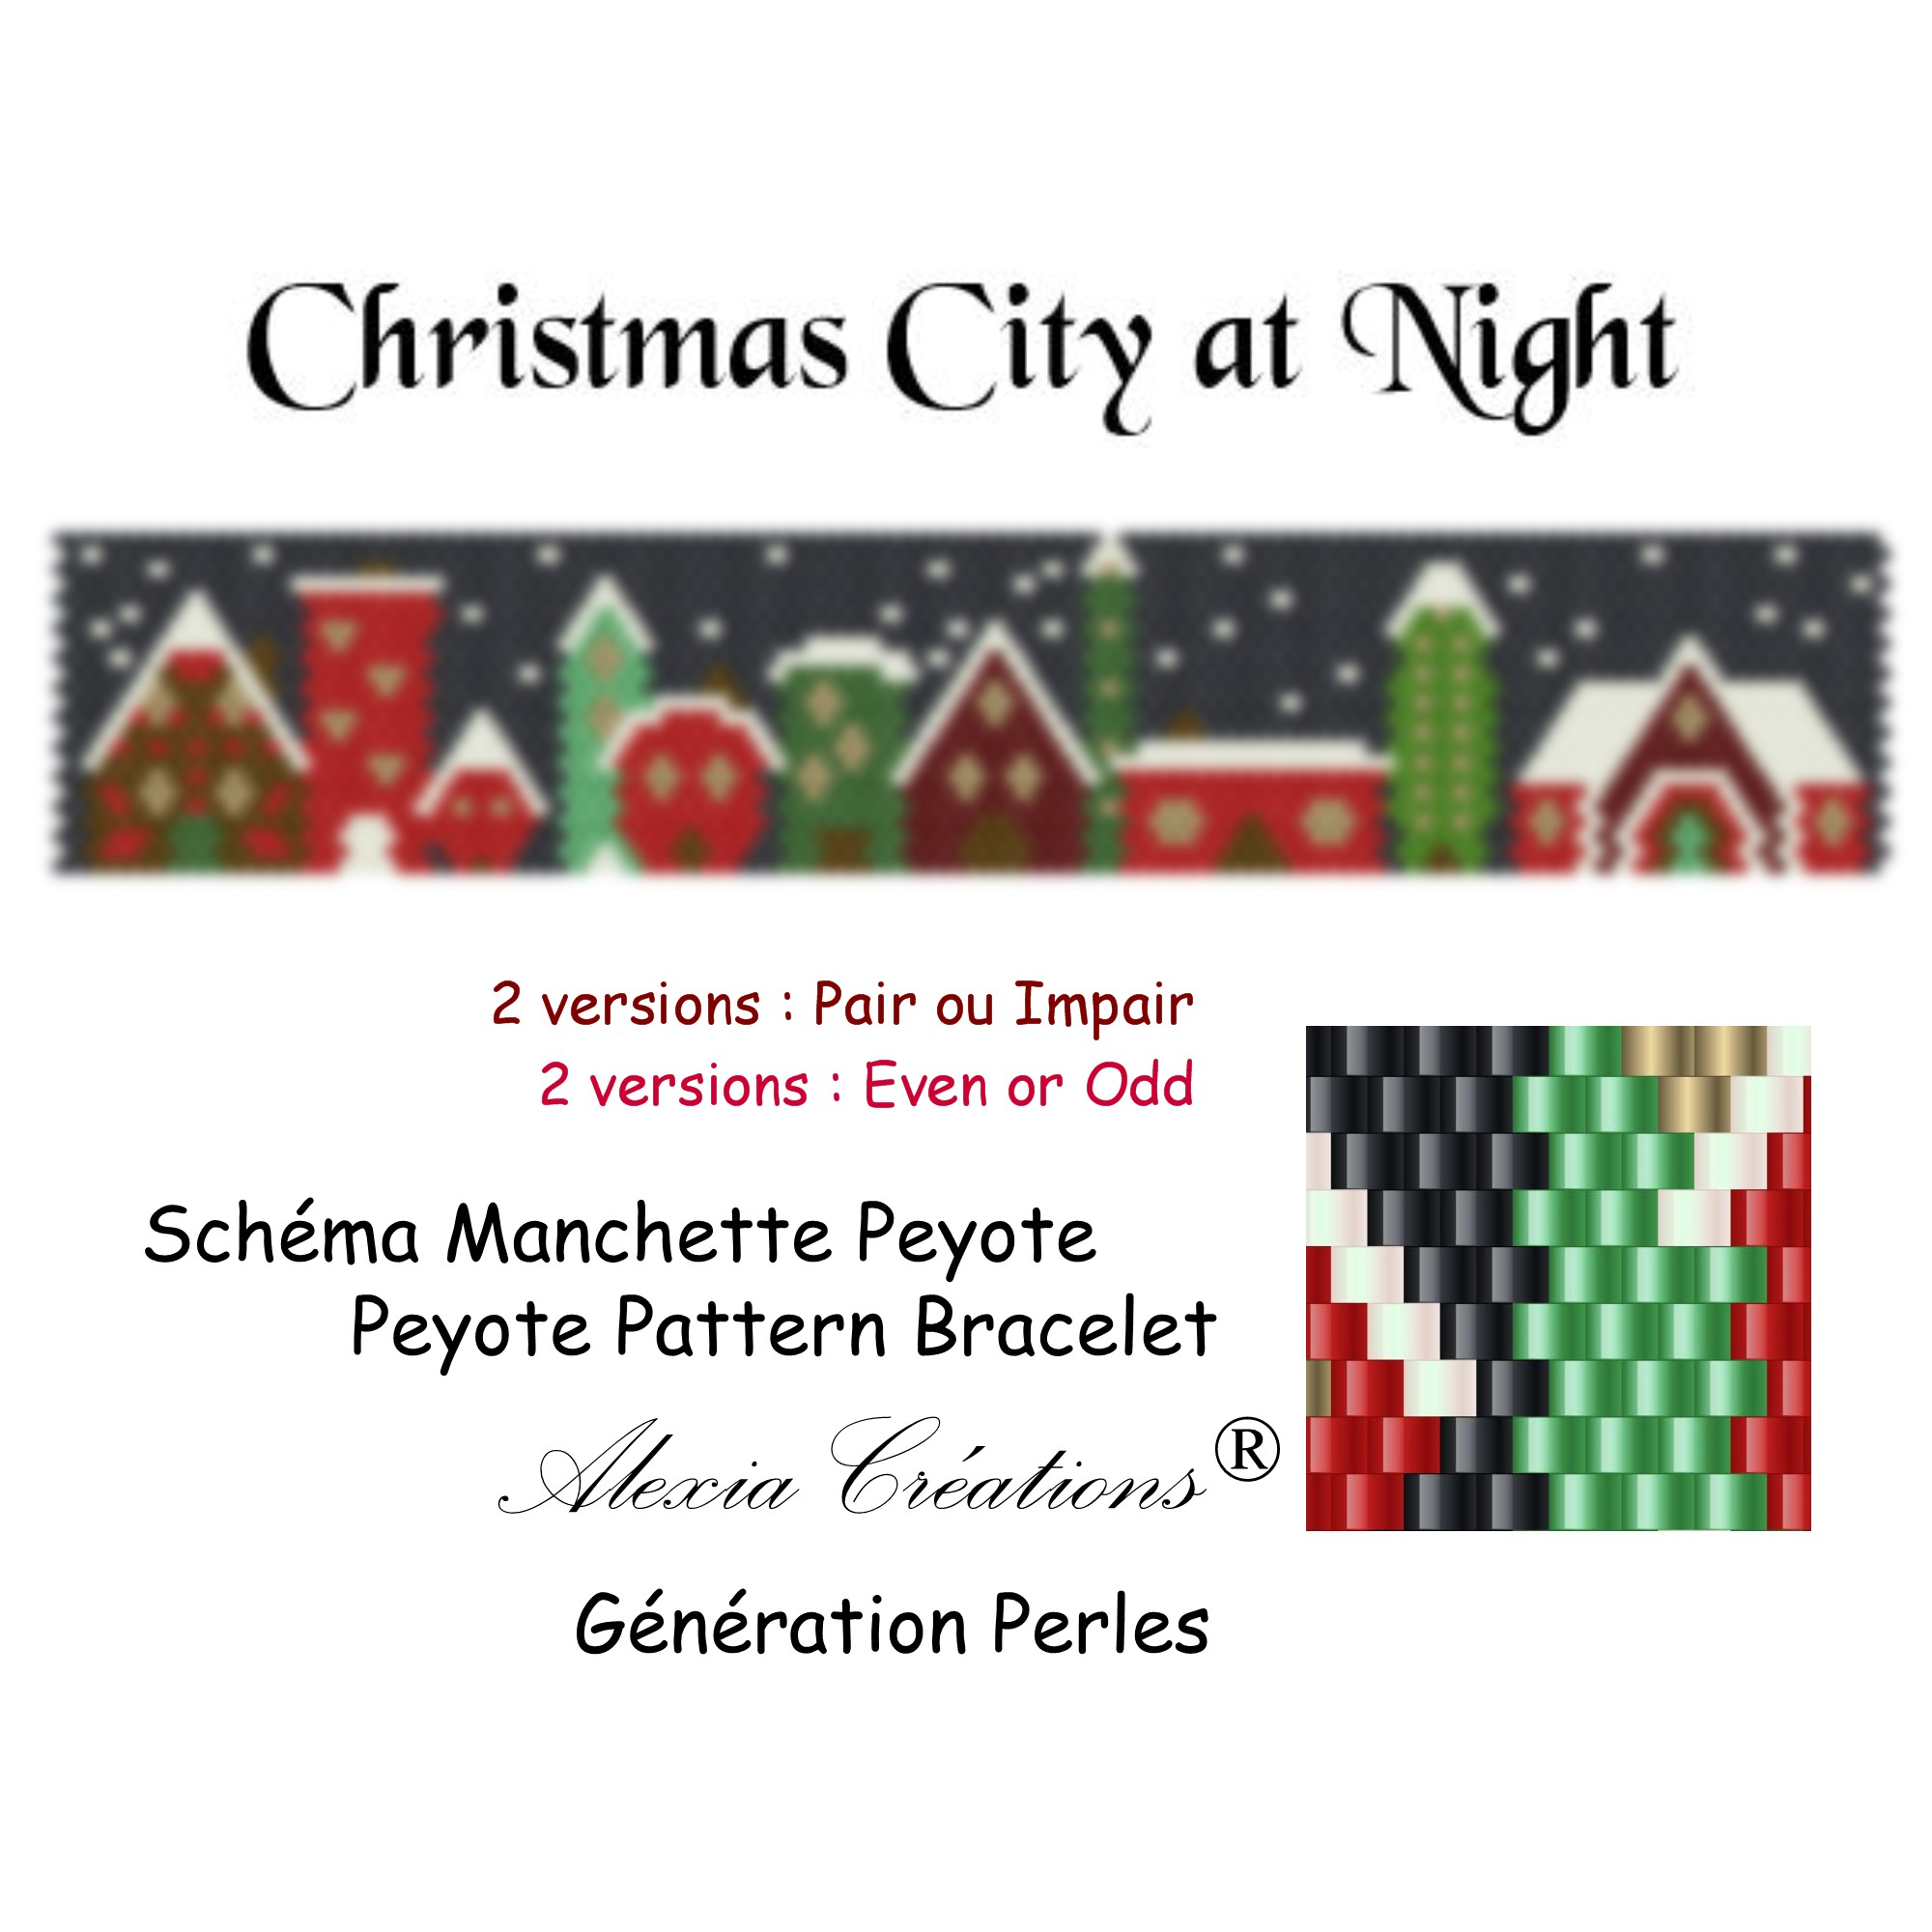 Manchette peyote Christmas City at Night